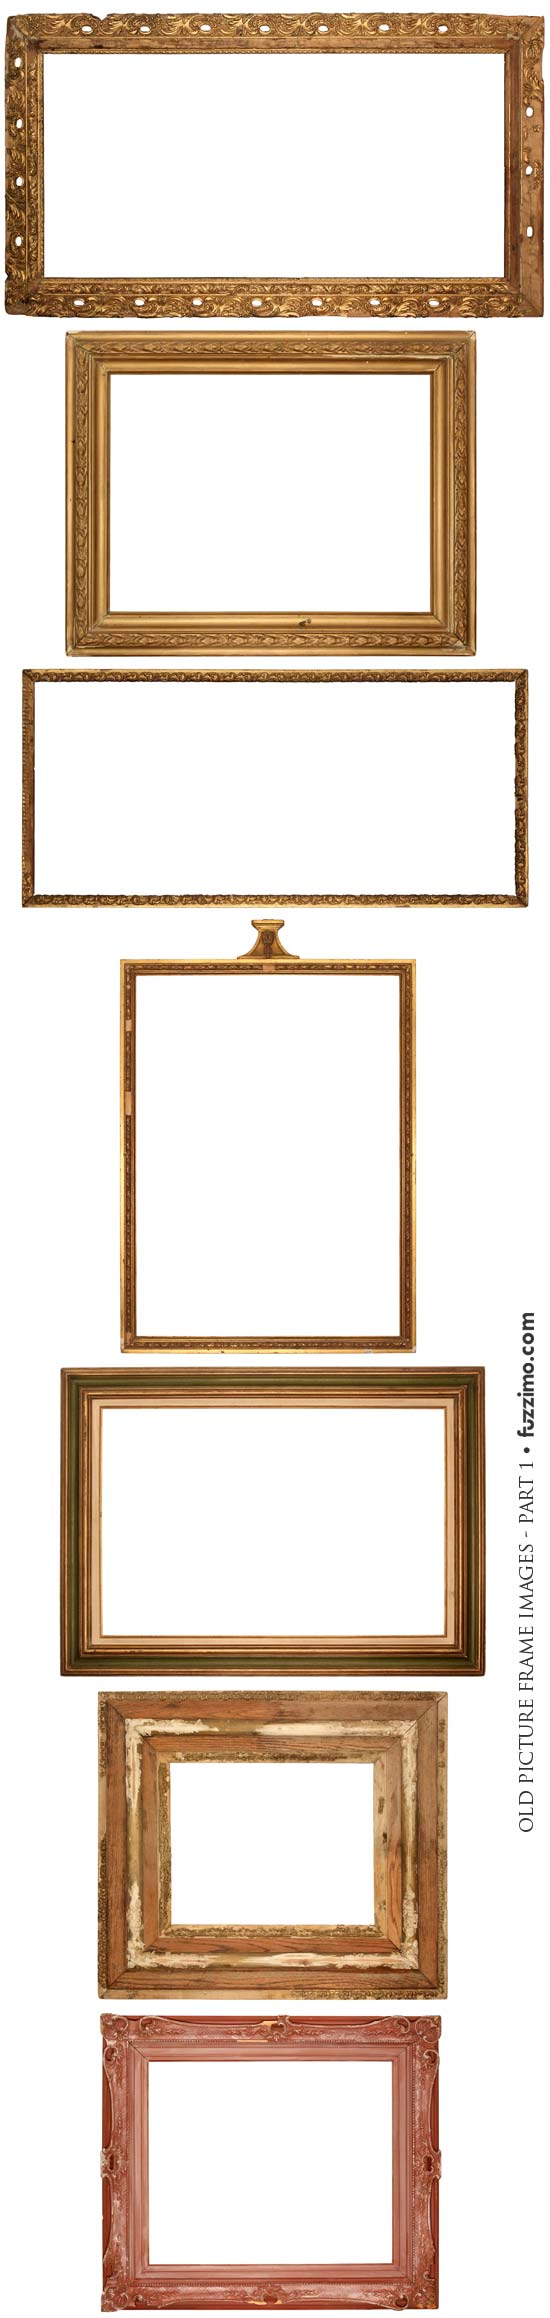 Free hi res old picture frame images part 1 fuzzimo fzm antique old picture frame images 1 jeuxipadfo Image collections